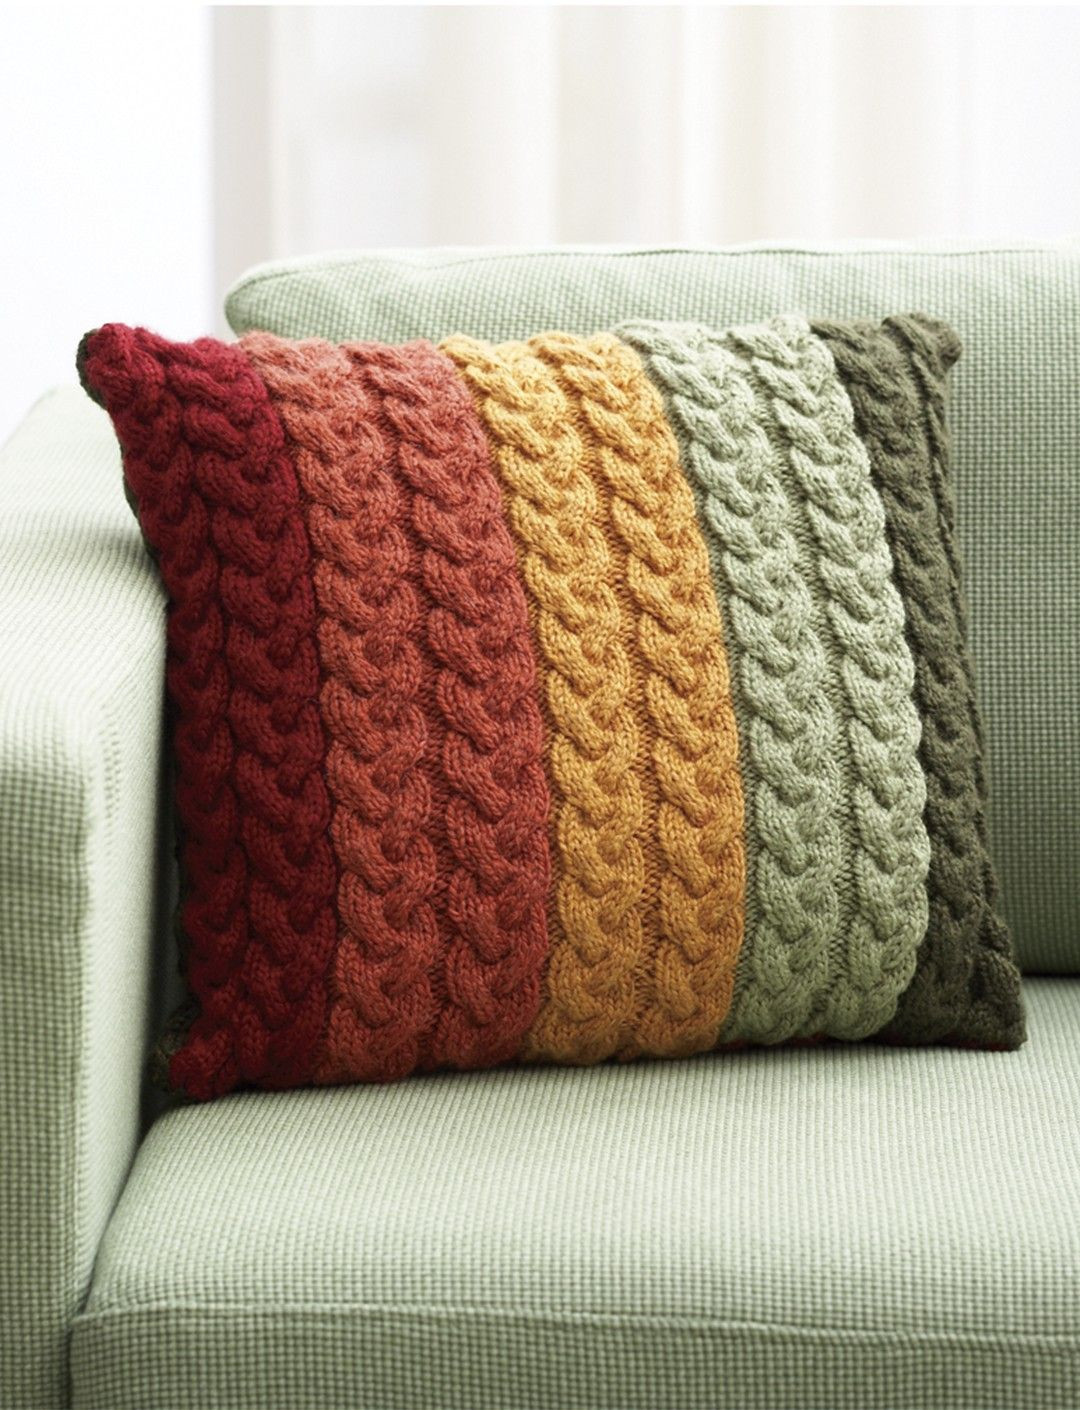 Crochet Pillow Cover Pattern Elegant Yarnspirations Patons Pillow Patterns Of Lovely 47 Images Crochet Pillow Cover Pattern